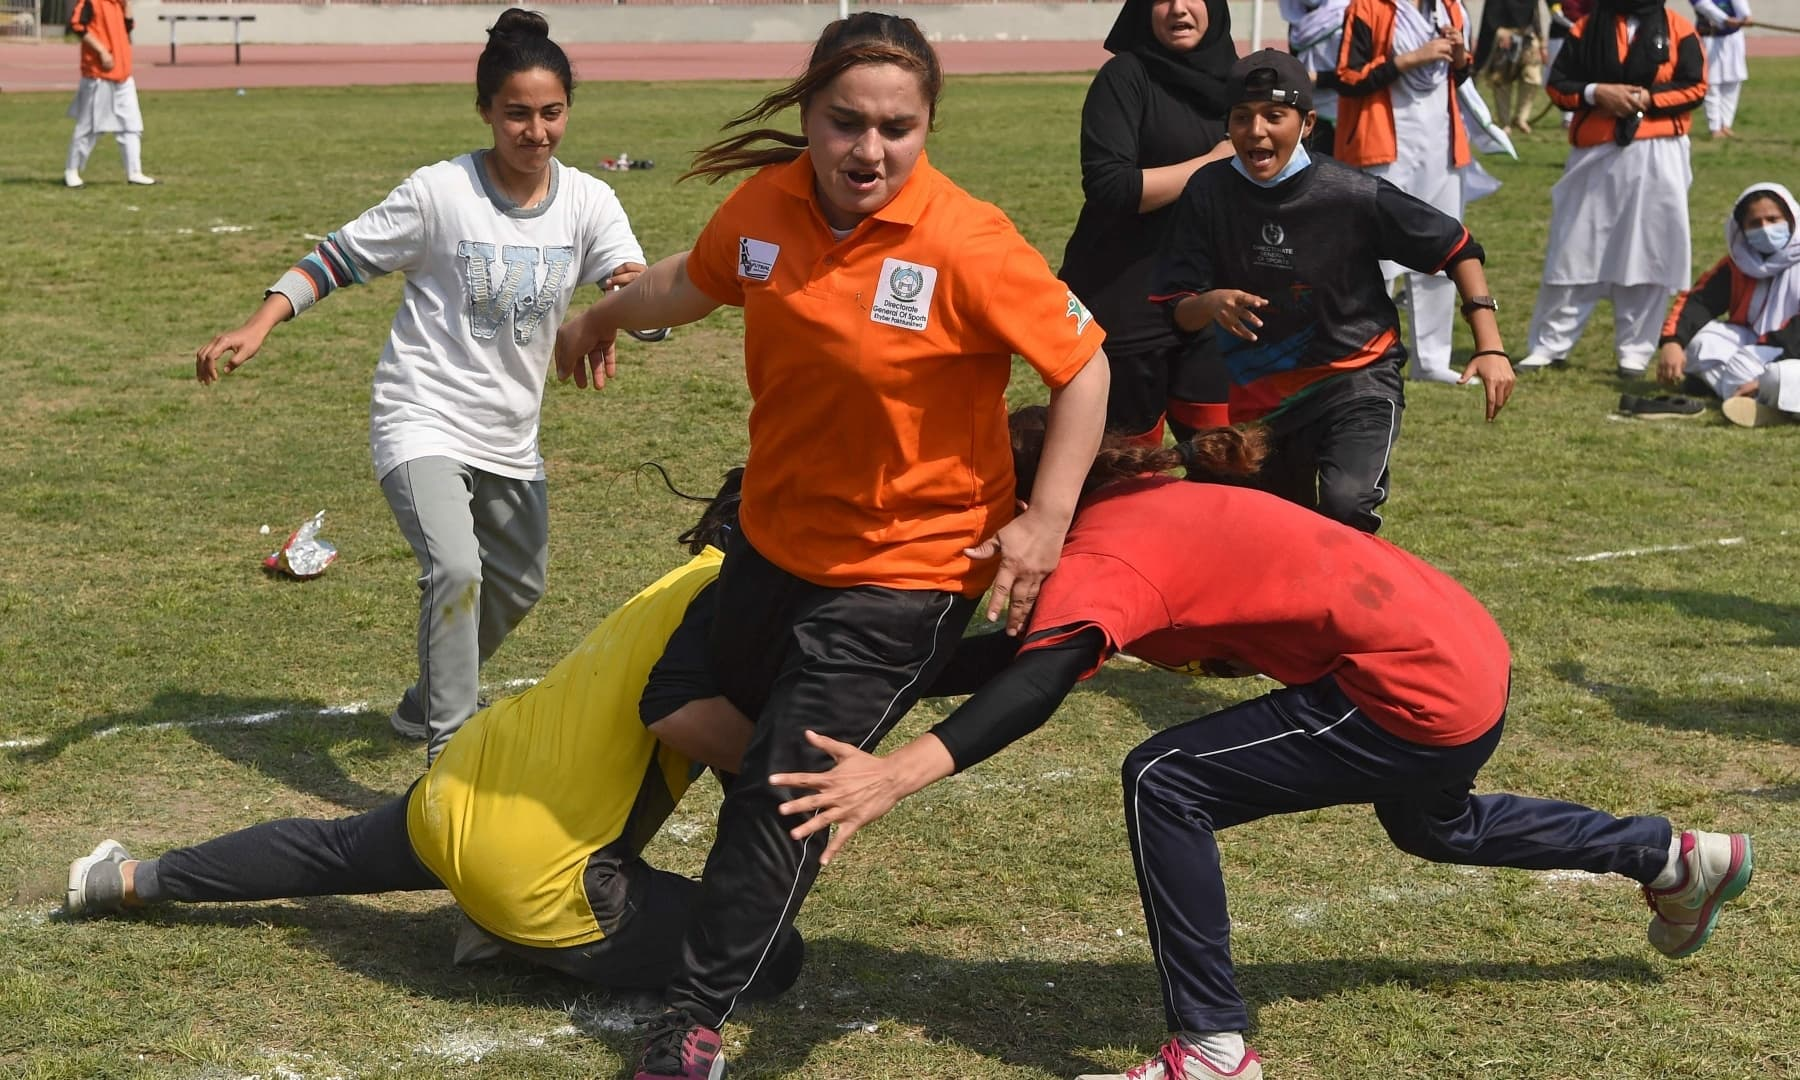 Students play football in a field in Peshawar on March 8 on the International Women's day. — AFP